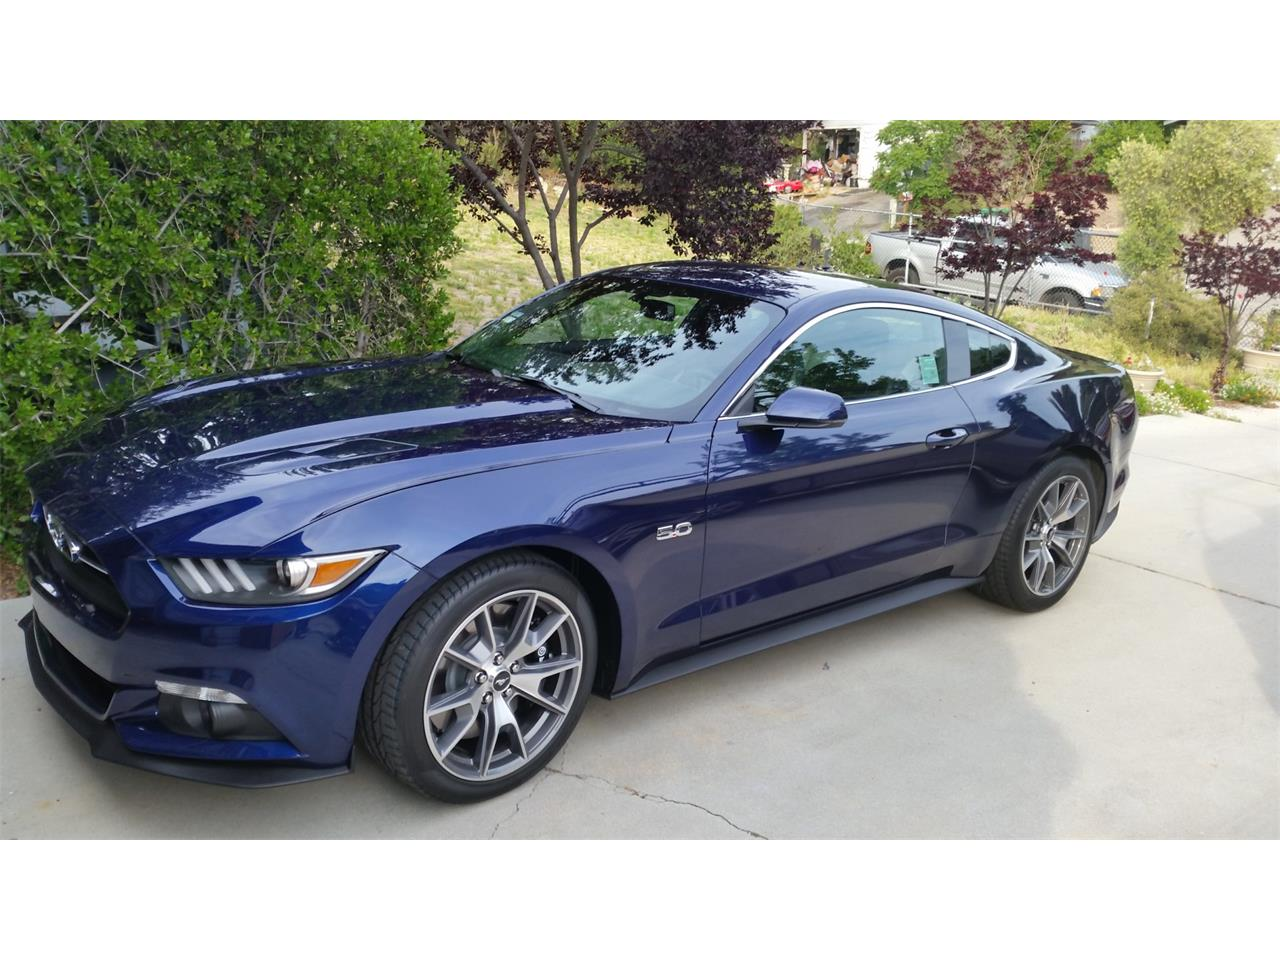 Large picture of 2015 mustang gt 48000 00 offered by a private seller n7eo